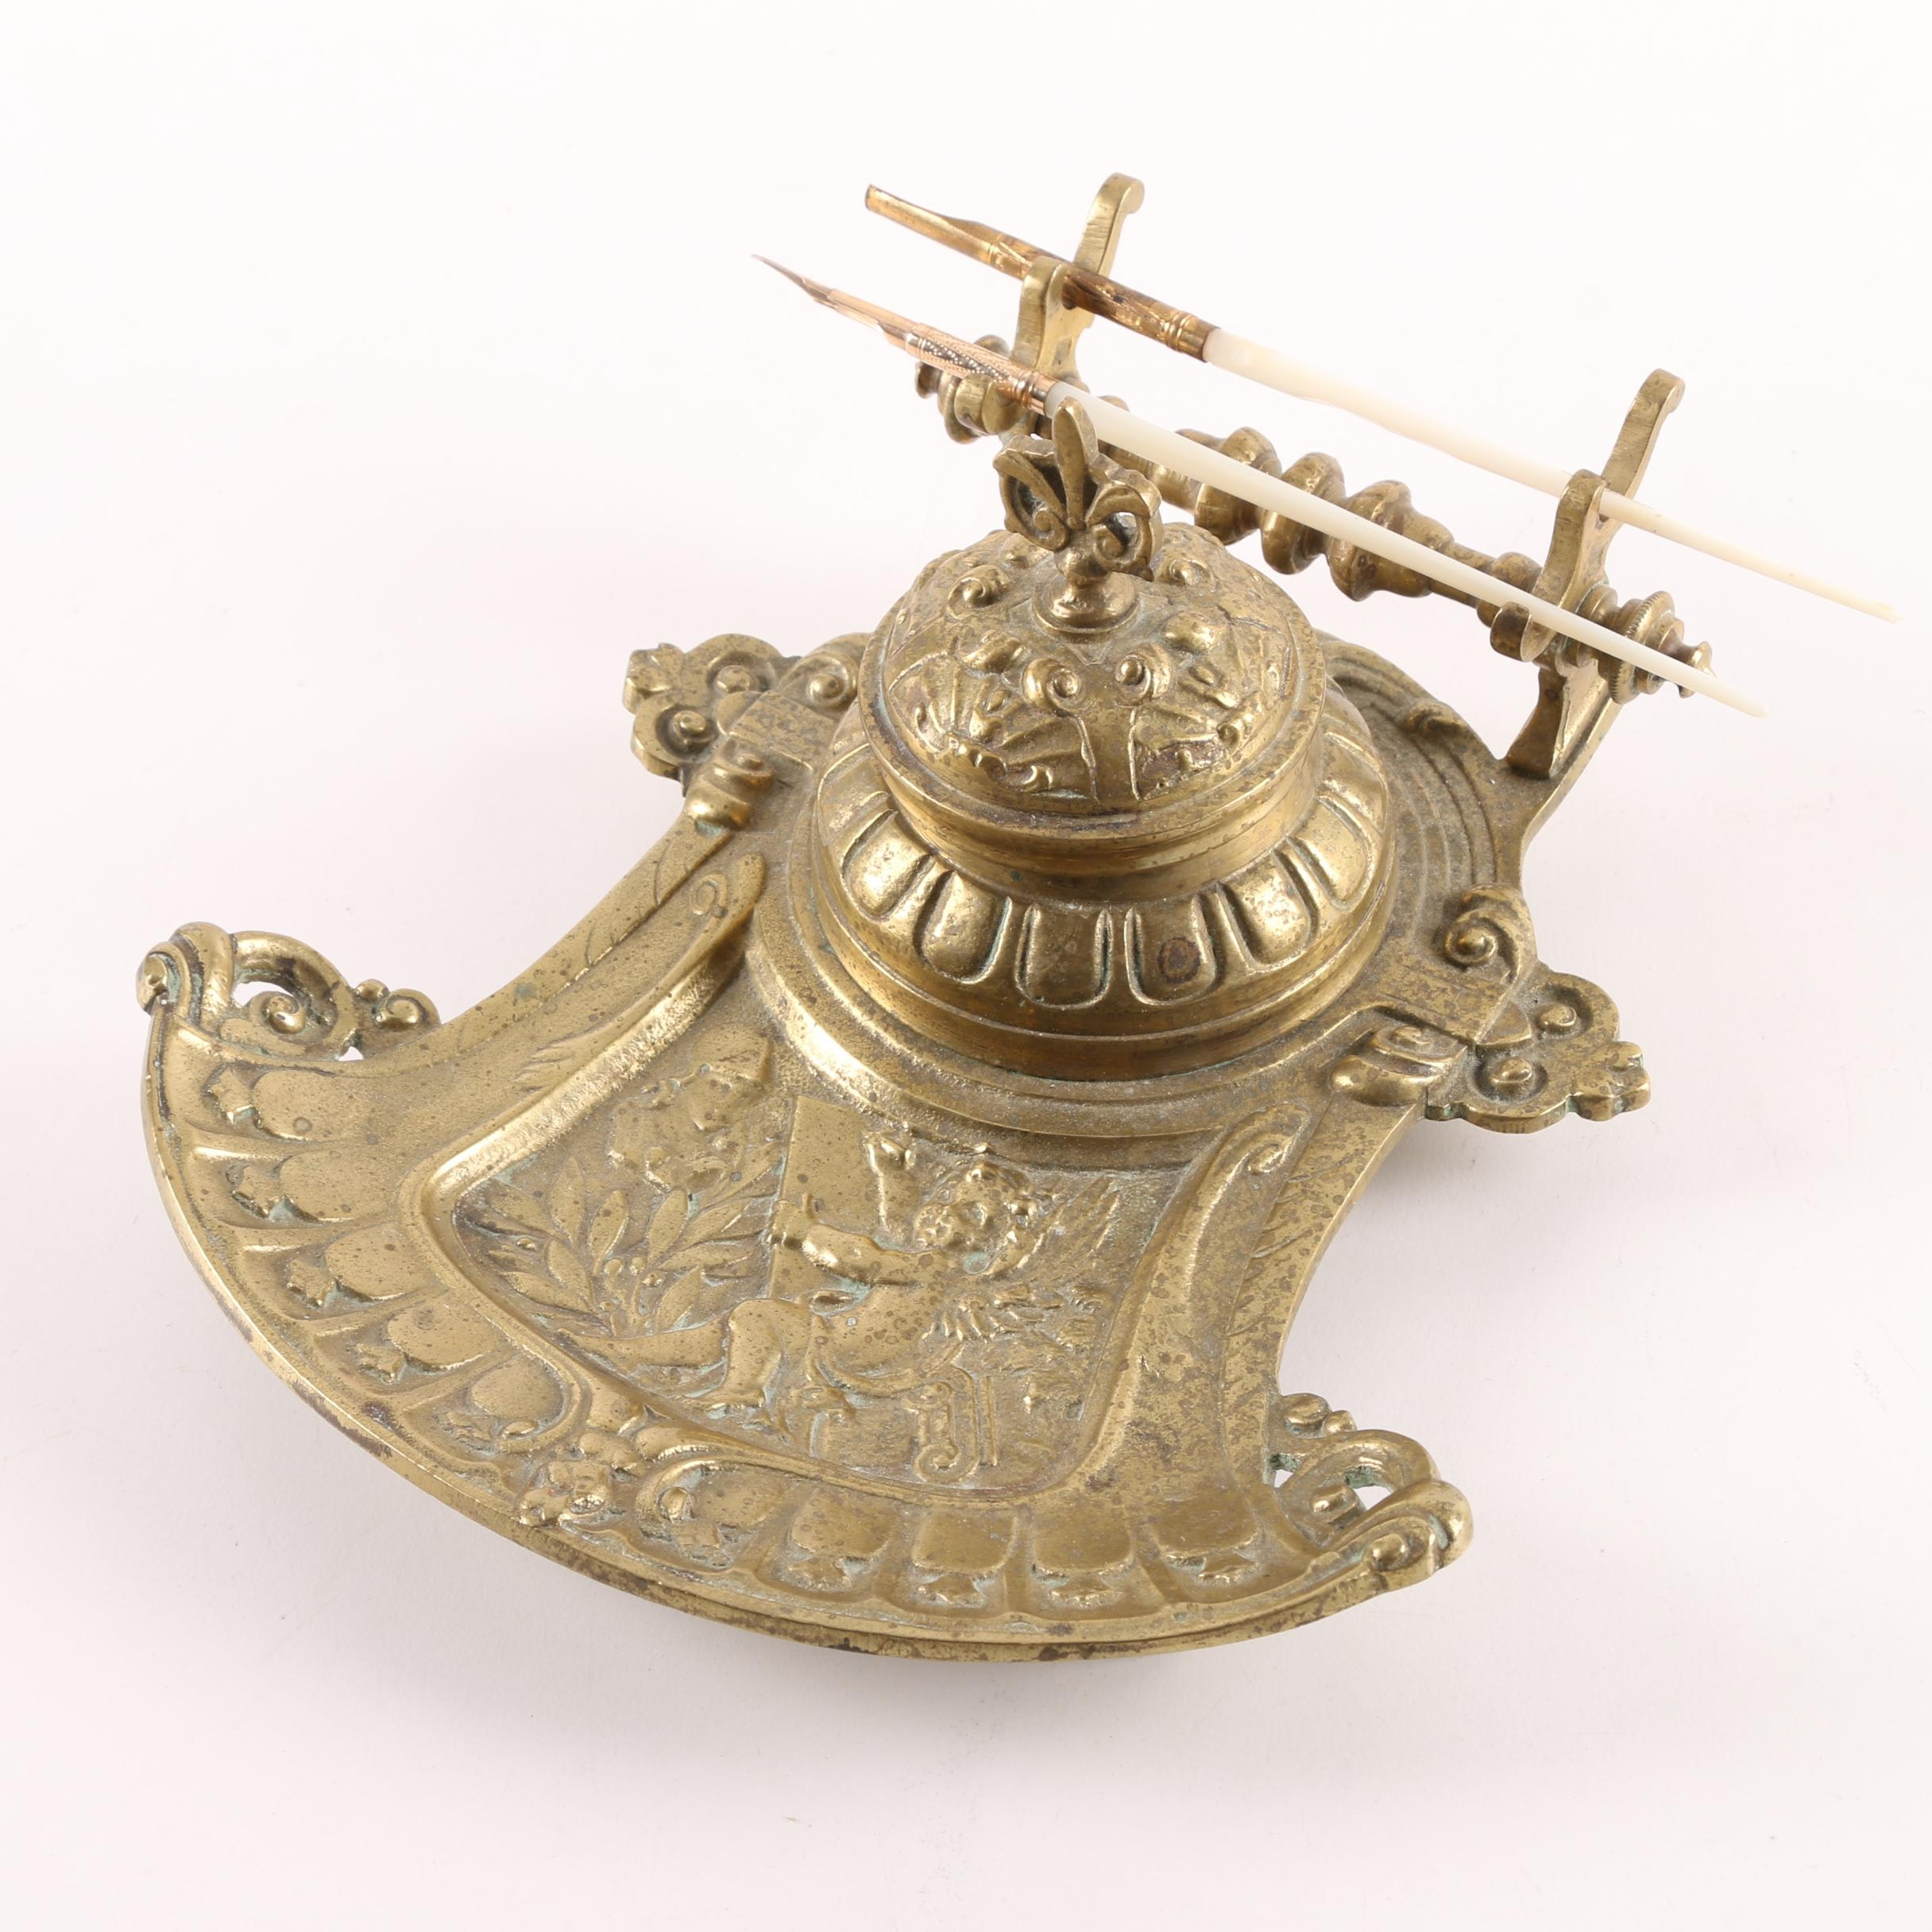 Antique Ornate Brass Inkwell with Mother of Pearl Dip Pens